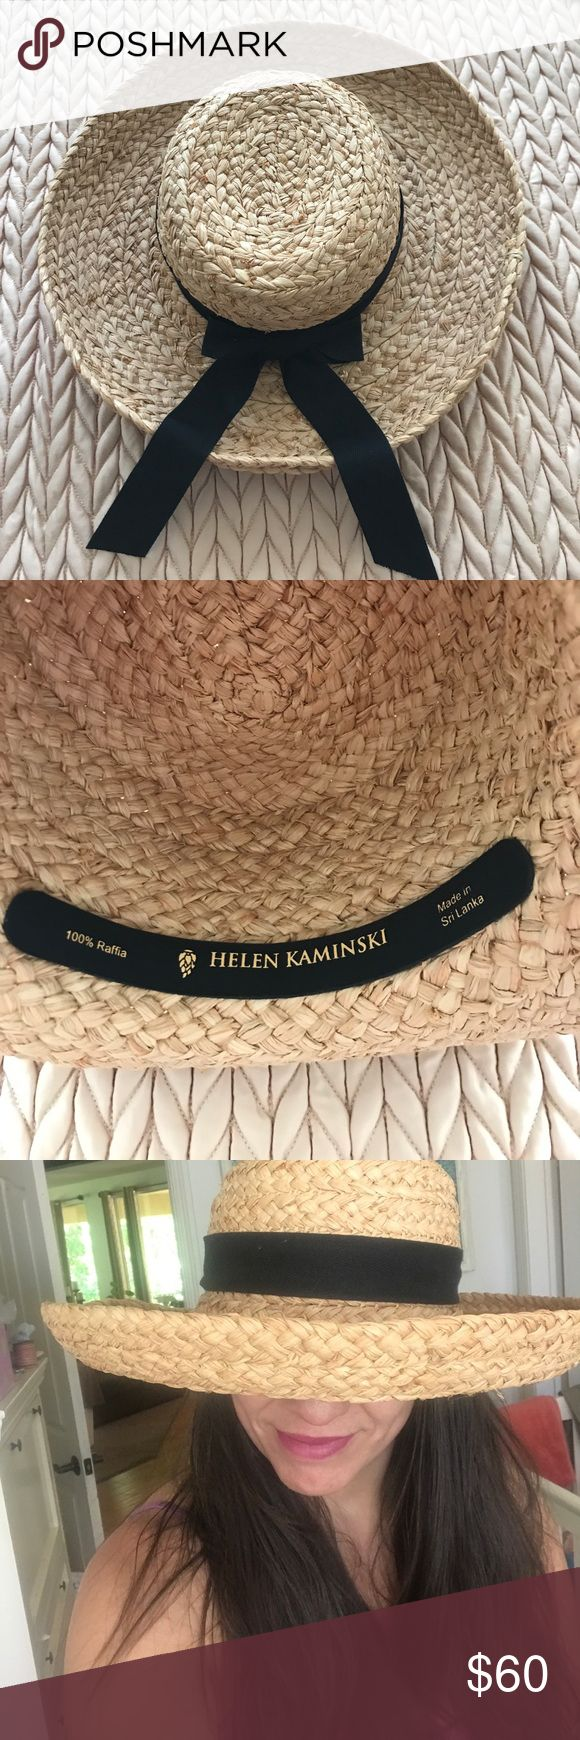 "Helen Kaminski Raffia Hat Helen Kaminski 14"" hat made of braided raffia. 48"" circumference with 4 1/2"" brim. Helen Kaminski Accessories Hats"